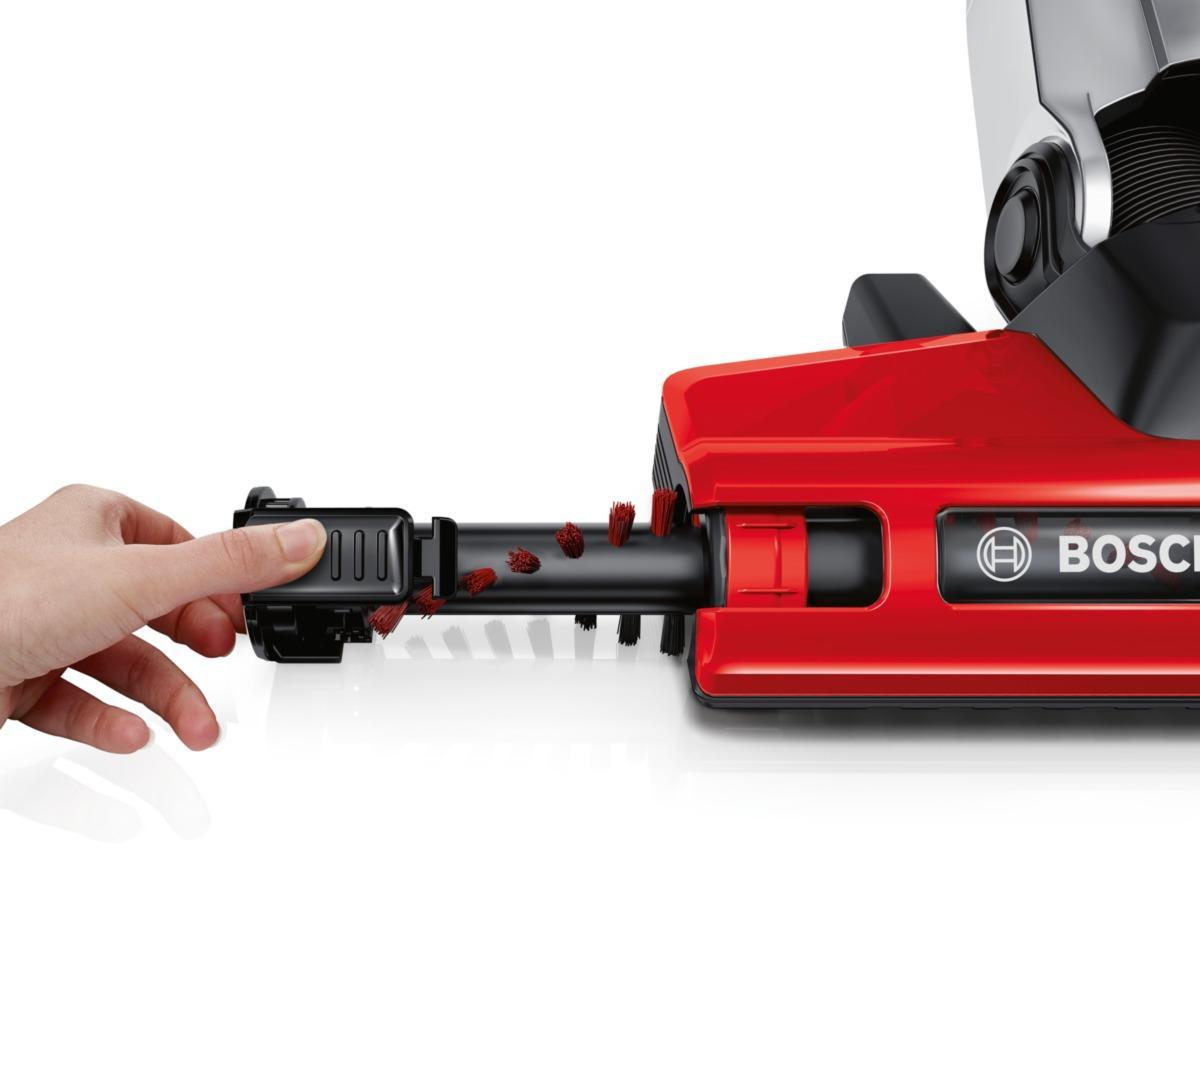 Bosch Bch6petgb Athlet Animal Upright Cordless Vacuum